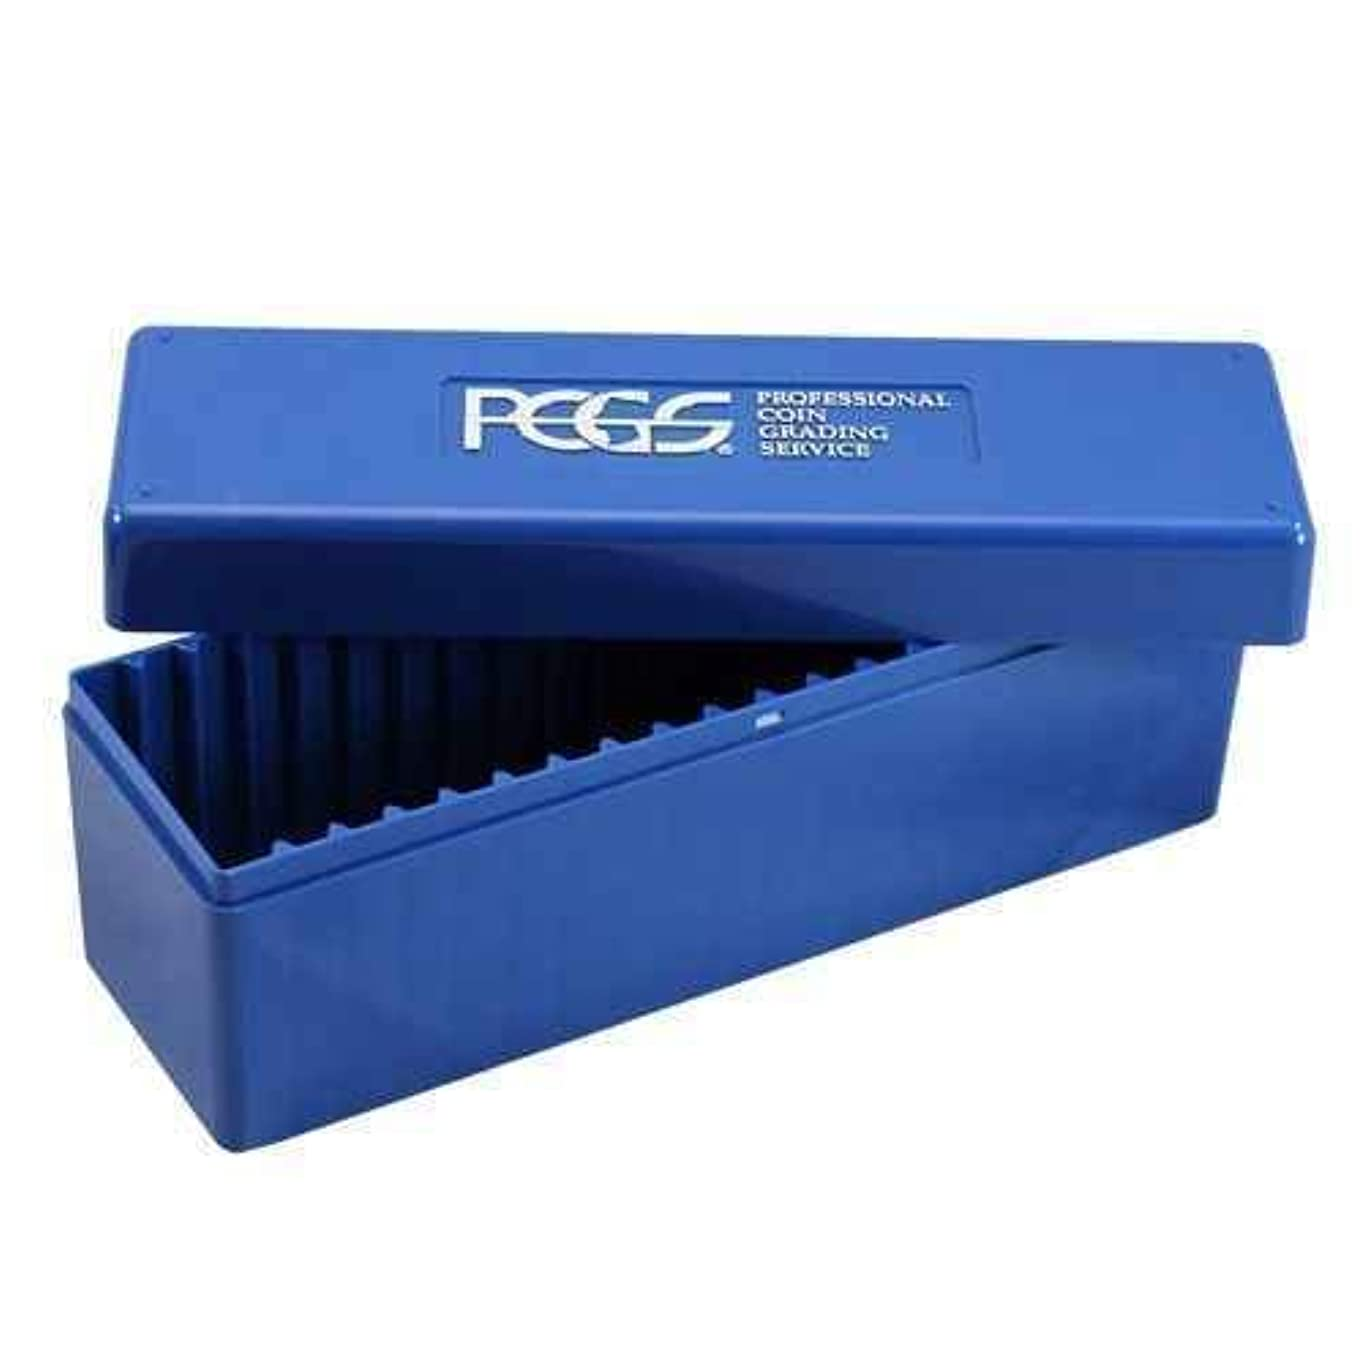 PCGS Plastic Storage Box for 20 Slab Coin Holders by PCGS